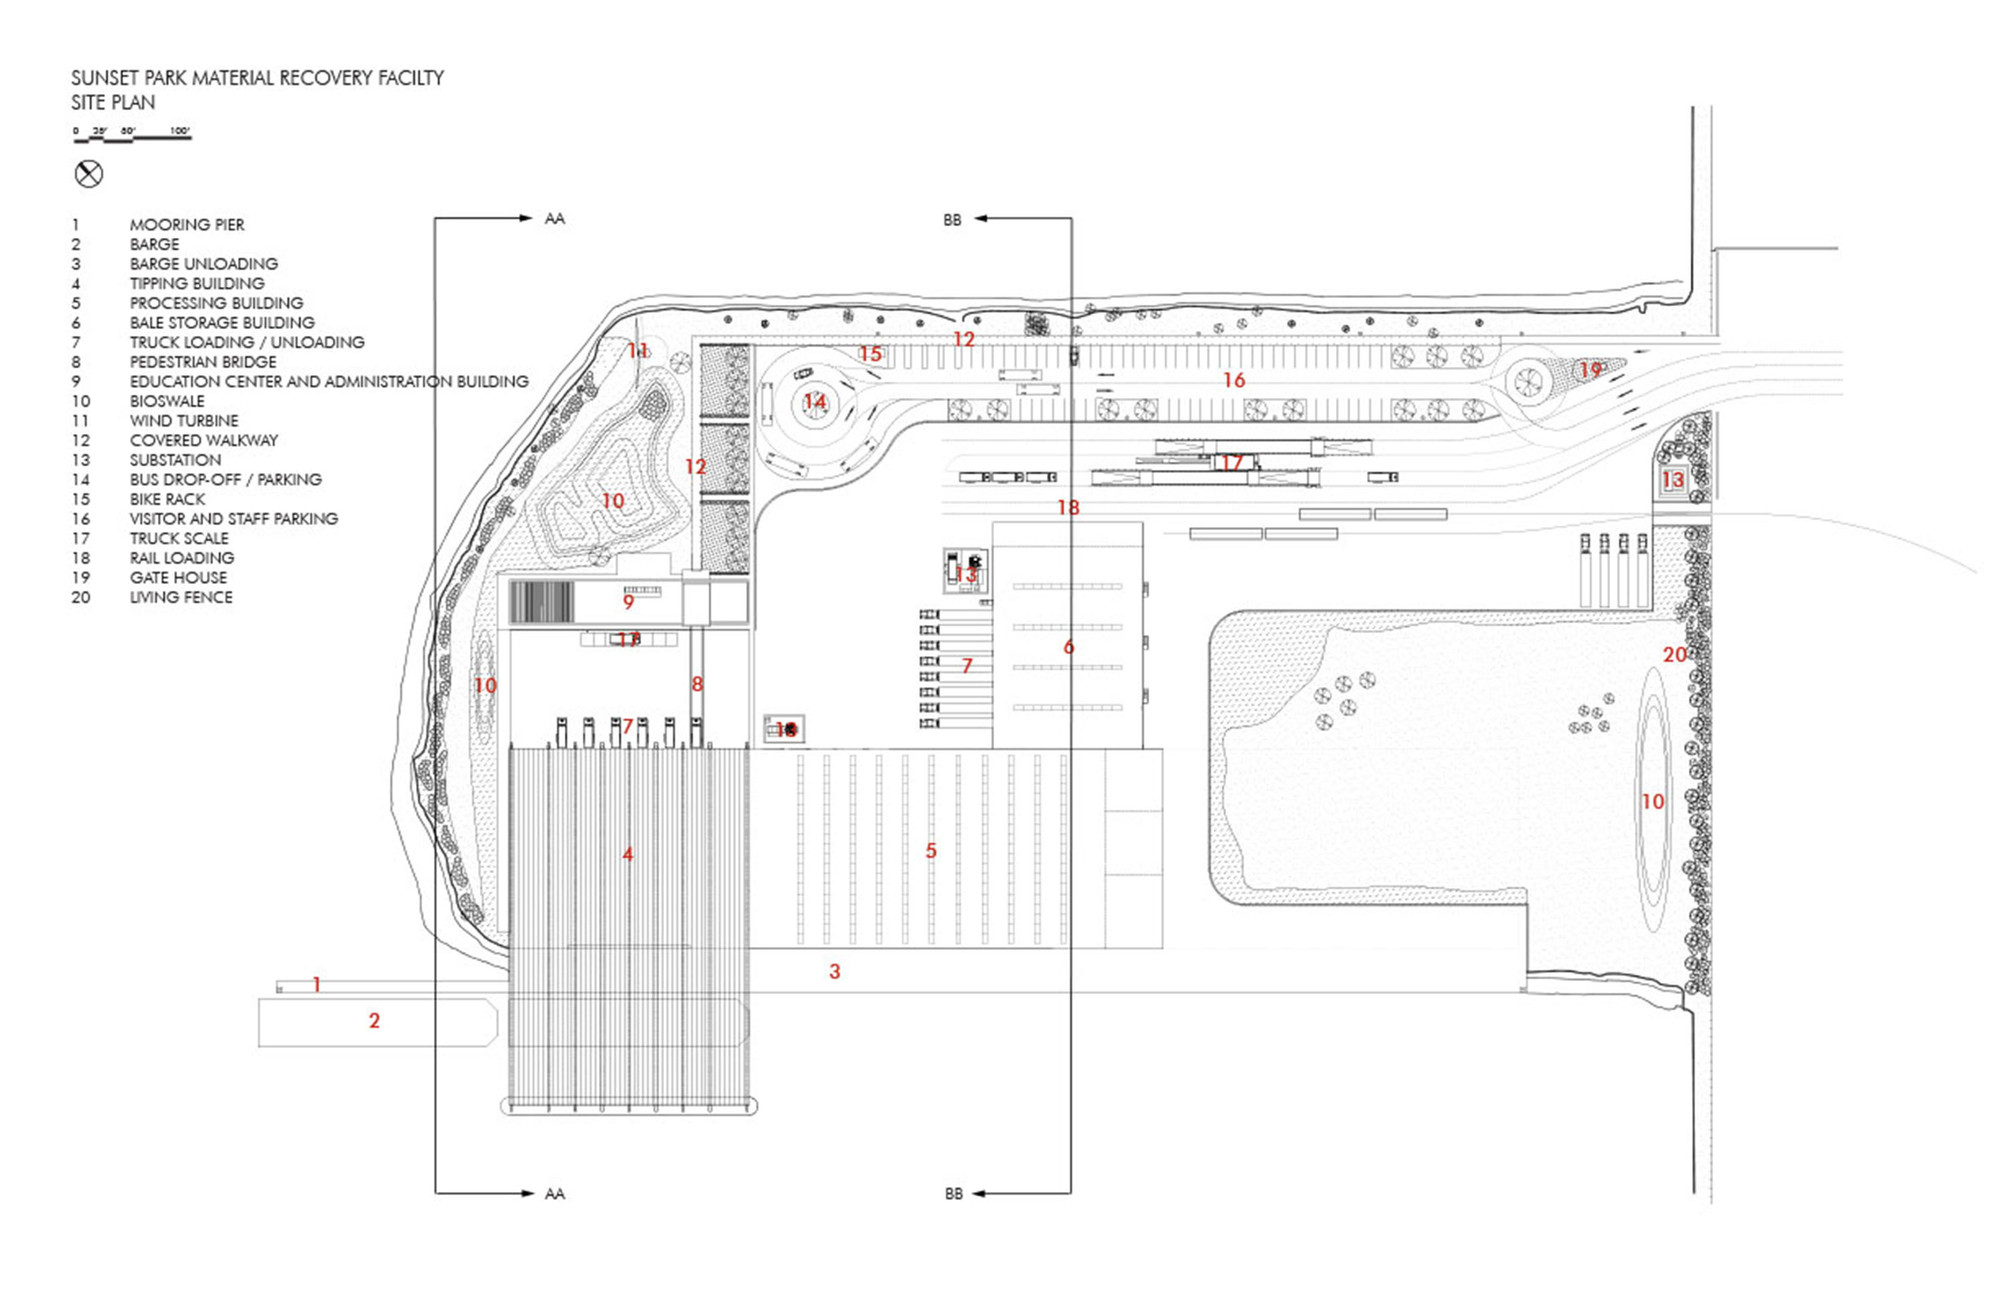 Sunset park material recovery facility selldorf for Site floor plan